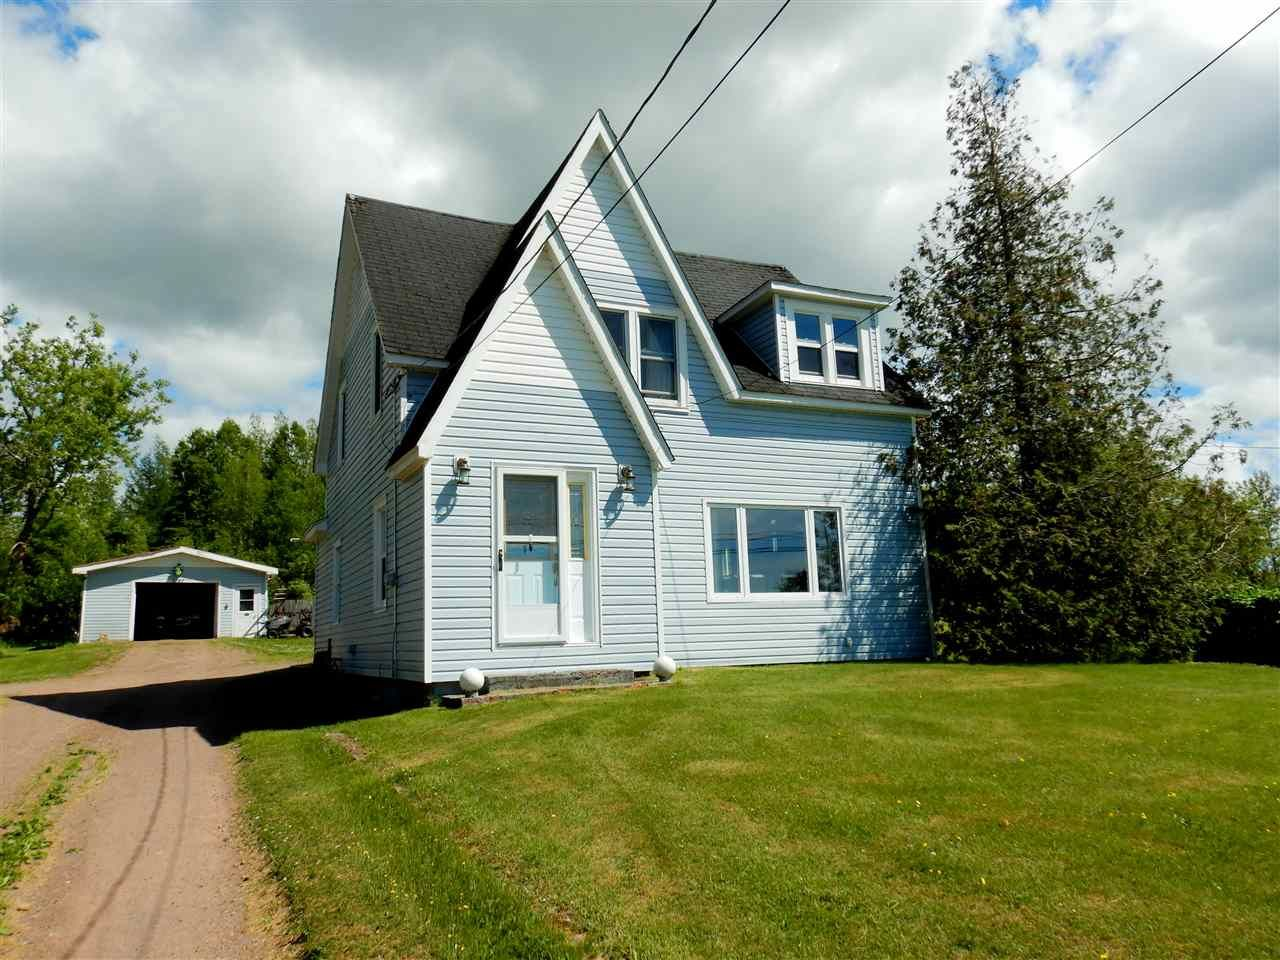 Main Photo: 5180 Boars Back Road in River Hebert: 102S-South Of Hwy 104, Parrsboro and area Residential for sale (Northern Region)  : MLS®# 202111757